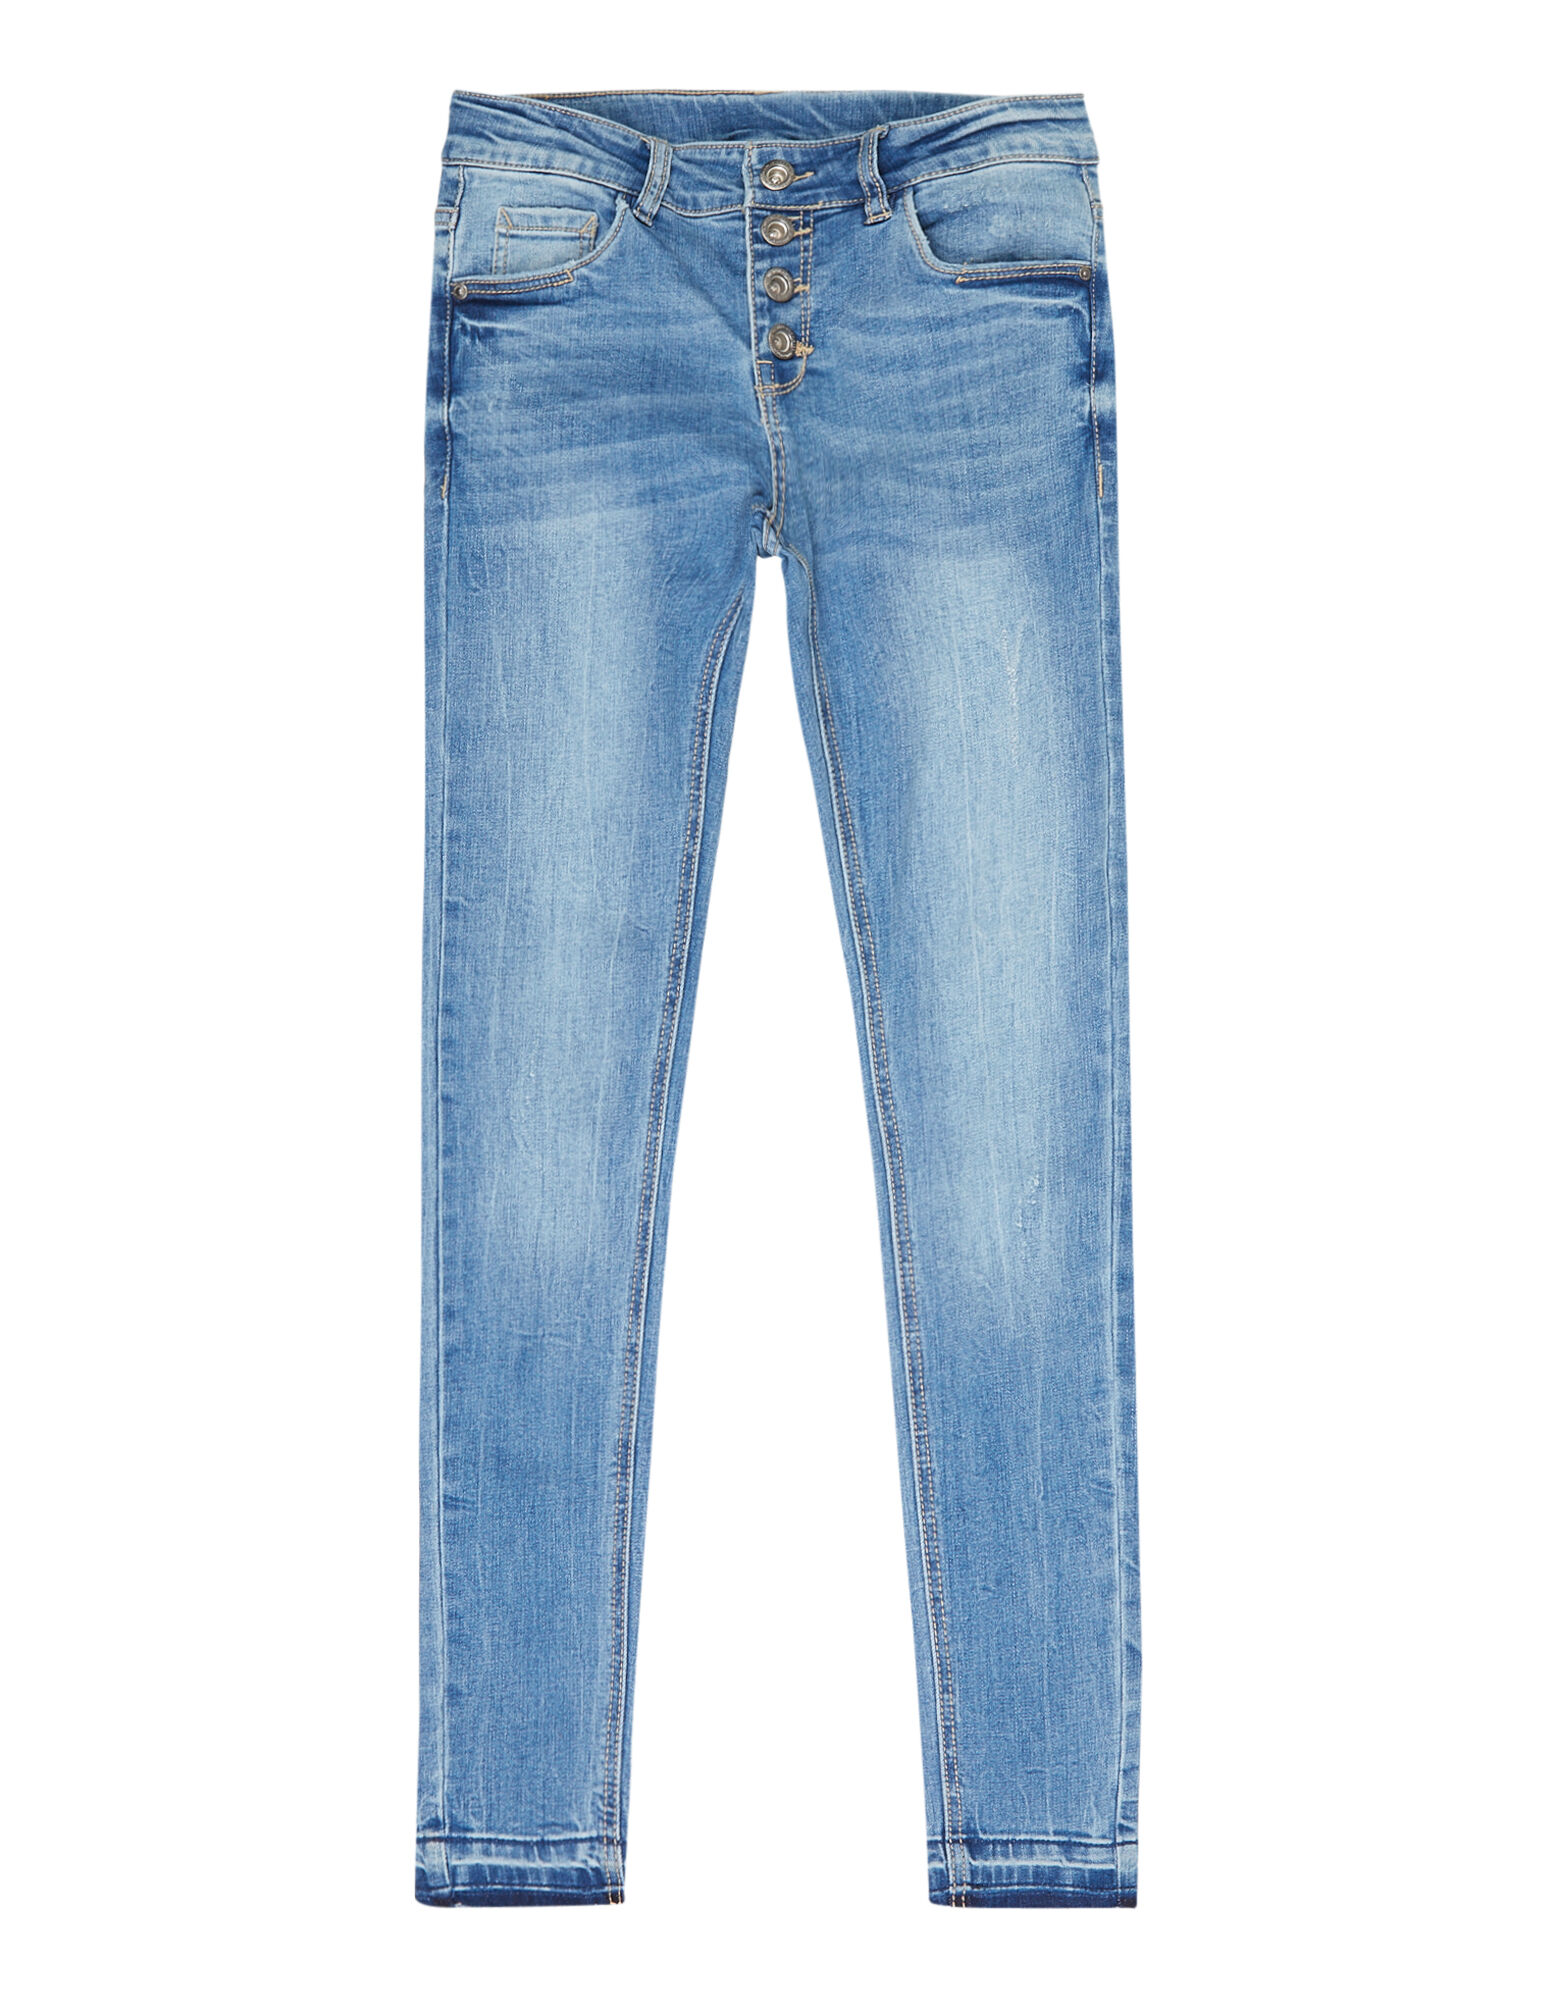 Mädchen Skinny Fit Jeans im Stone Washed Look